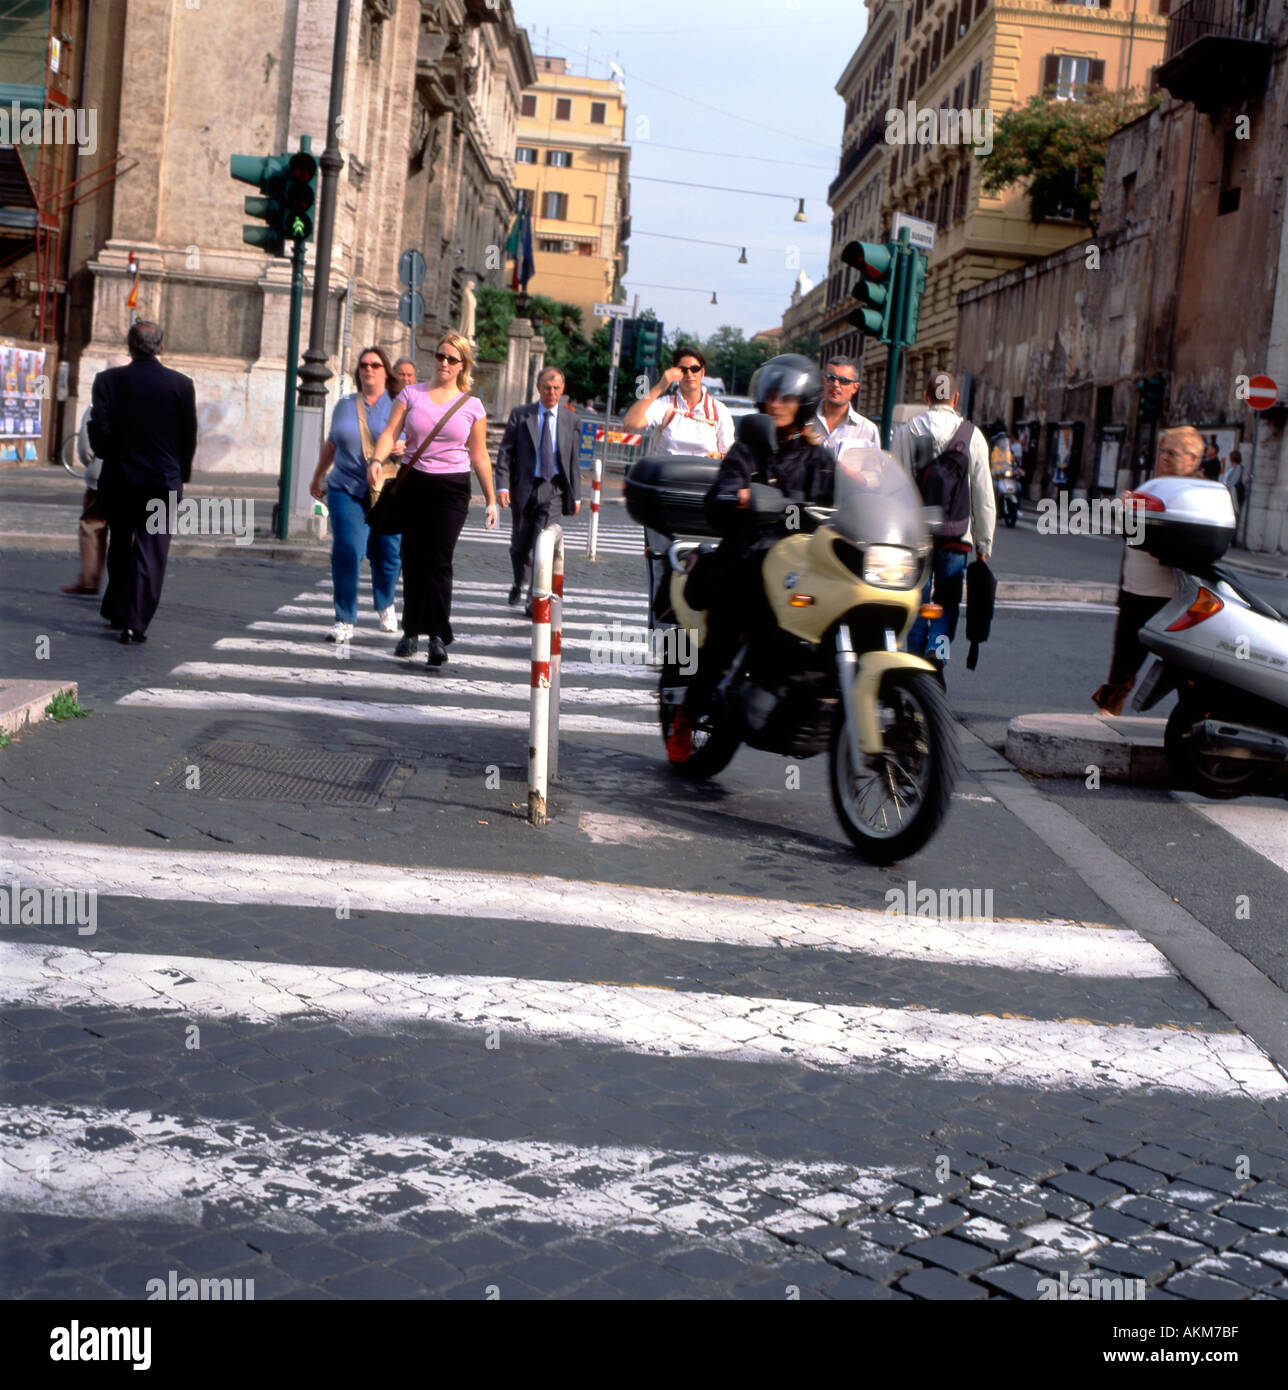 A motorcycle driving on a pedestrian zebra crossing in Rome, Italy   KATHY DEWITT Stock Photo